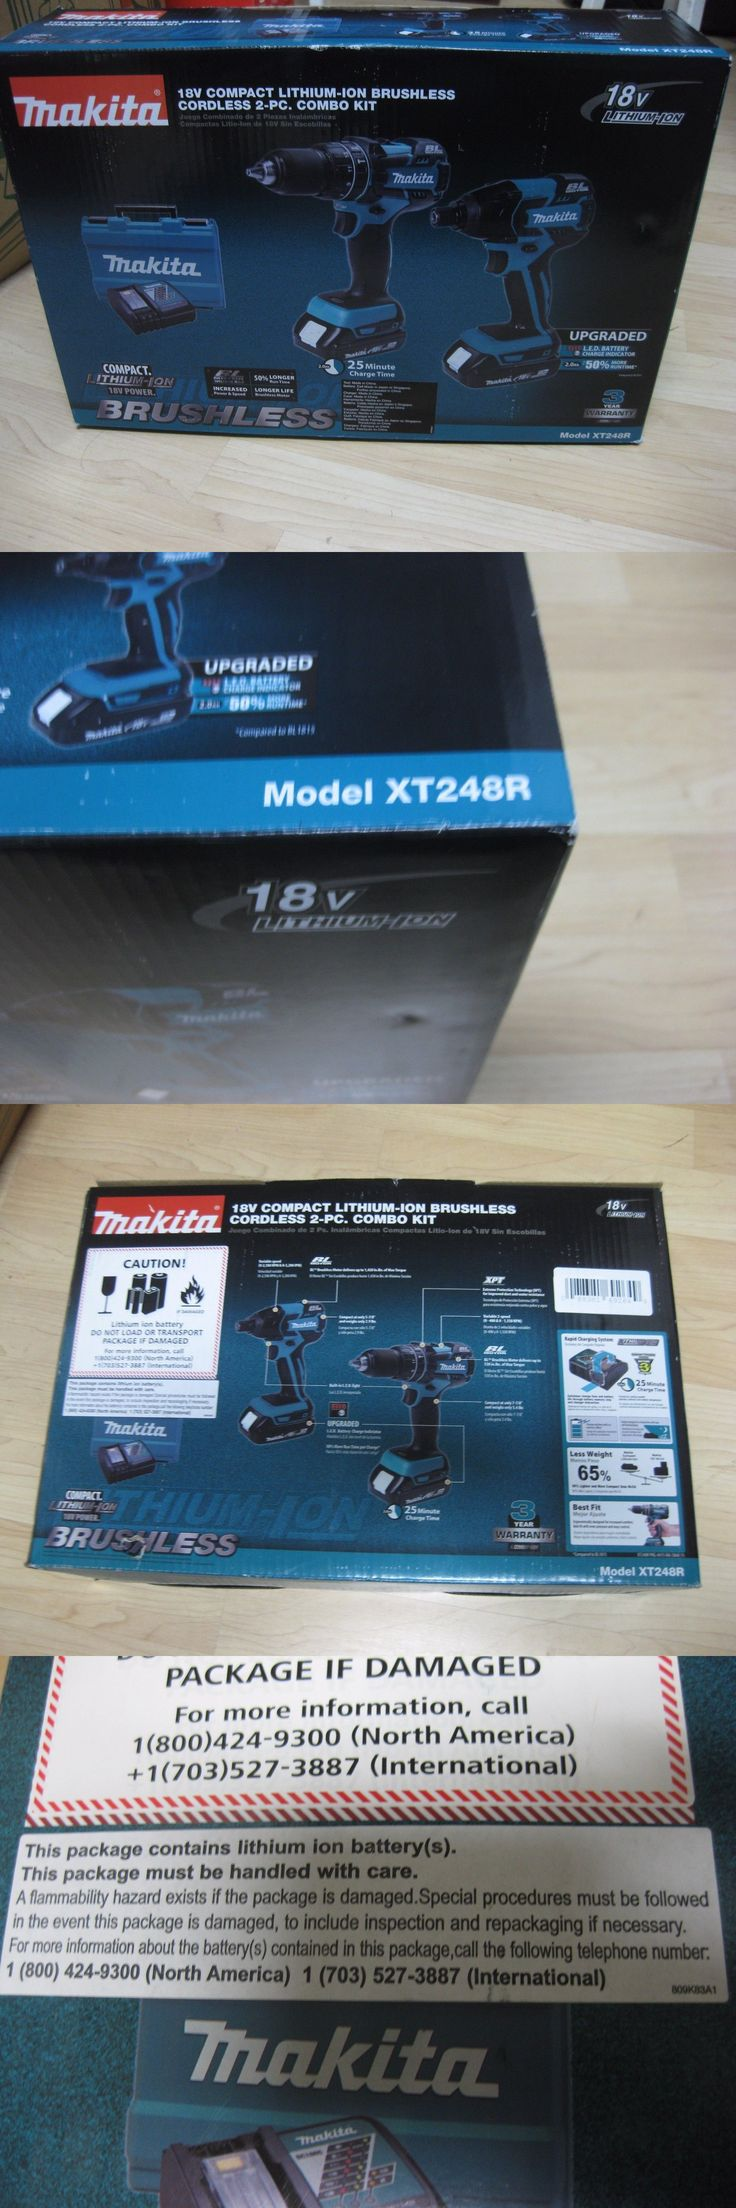 Combination Sets 177000: Makita Xt248r 18V Compact Lithium-Ion Brushless Cordless Combo Kit (2-Piece) -> BUY IT NOW ONLY: $219.95 on eBay!